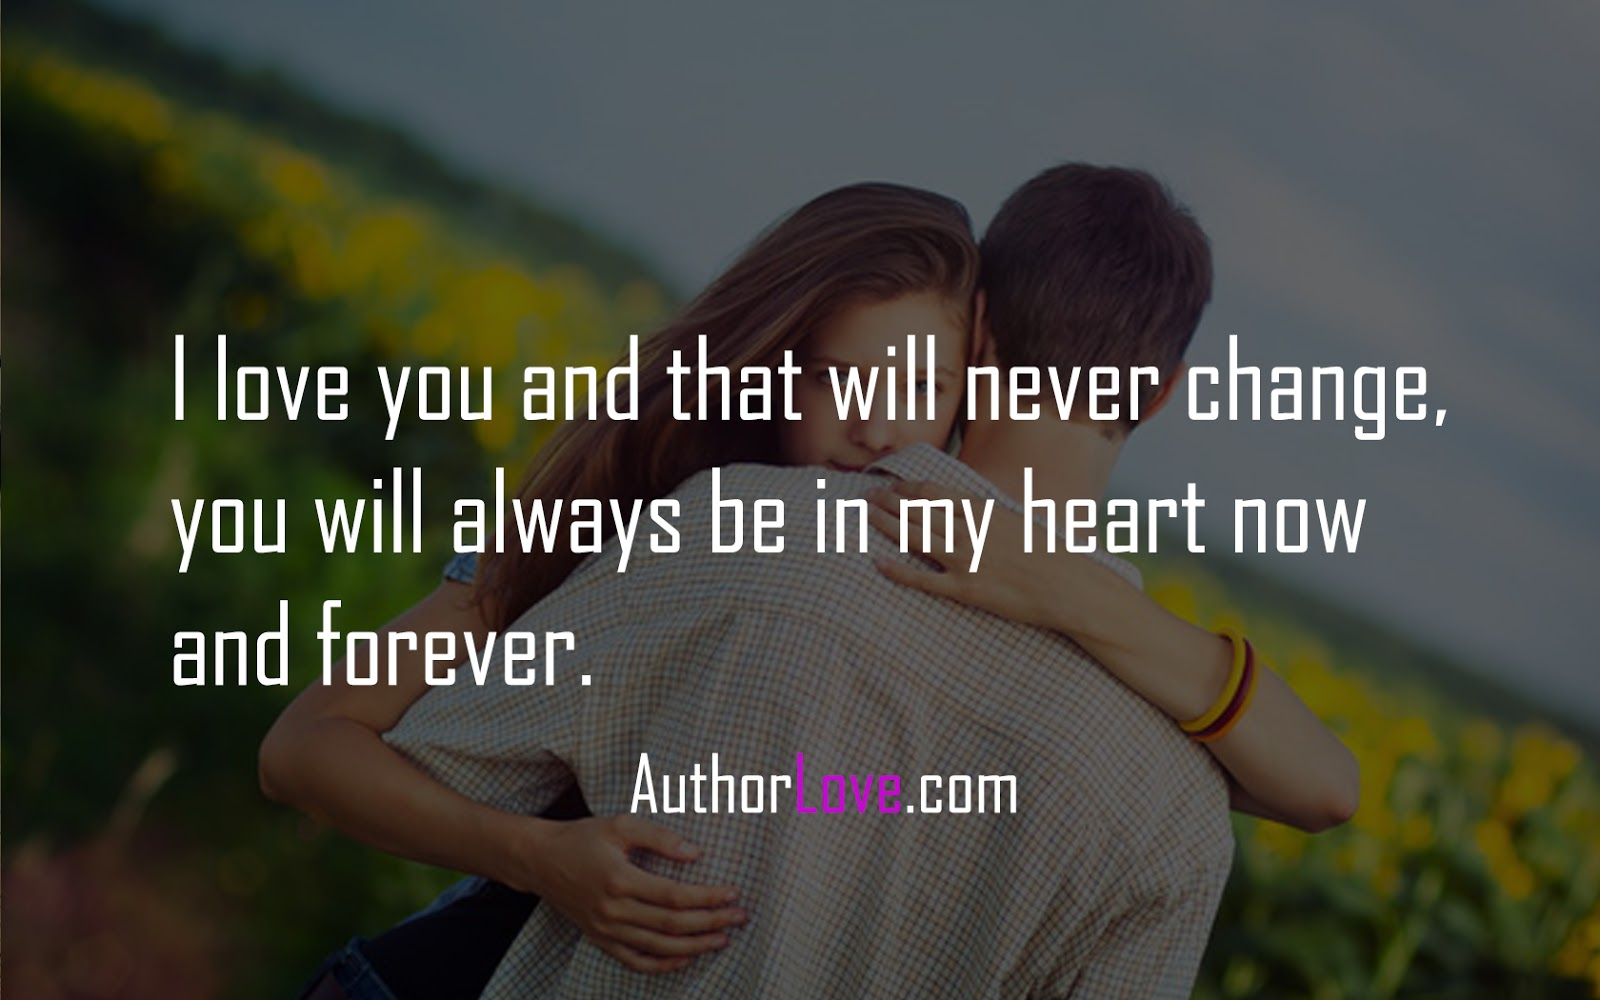 Love Quotes I Love You And That Will Never Change  Love Quotes  Author Love